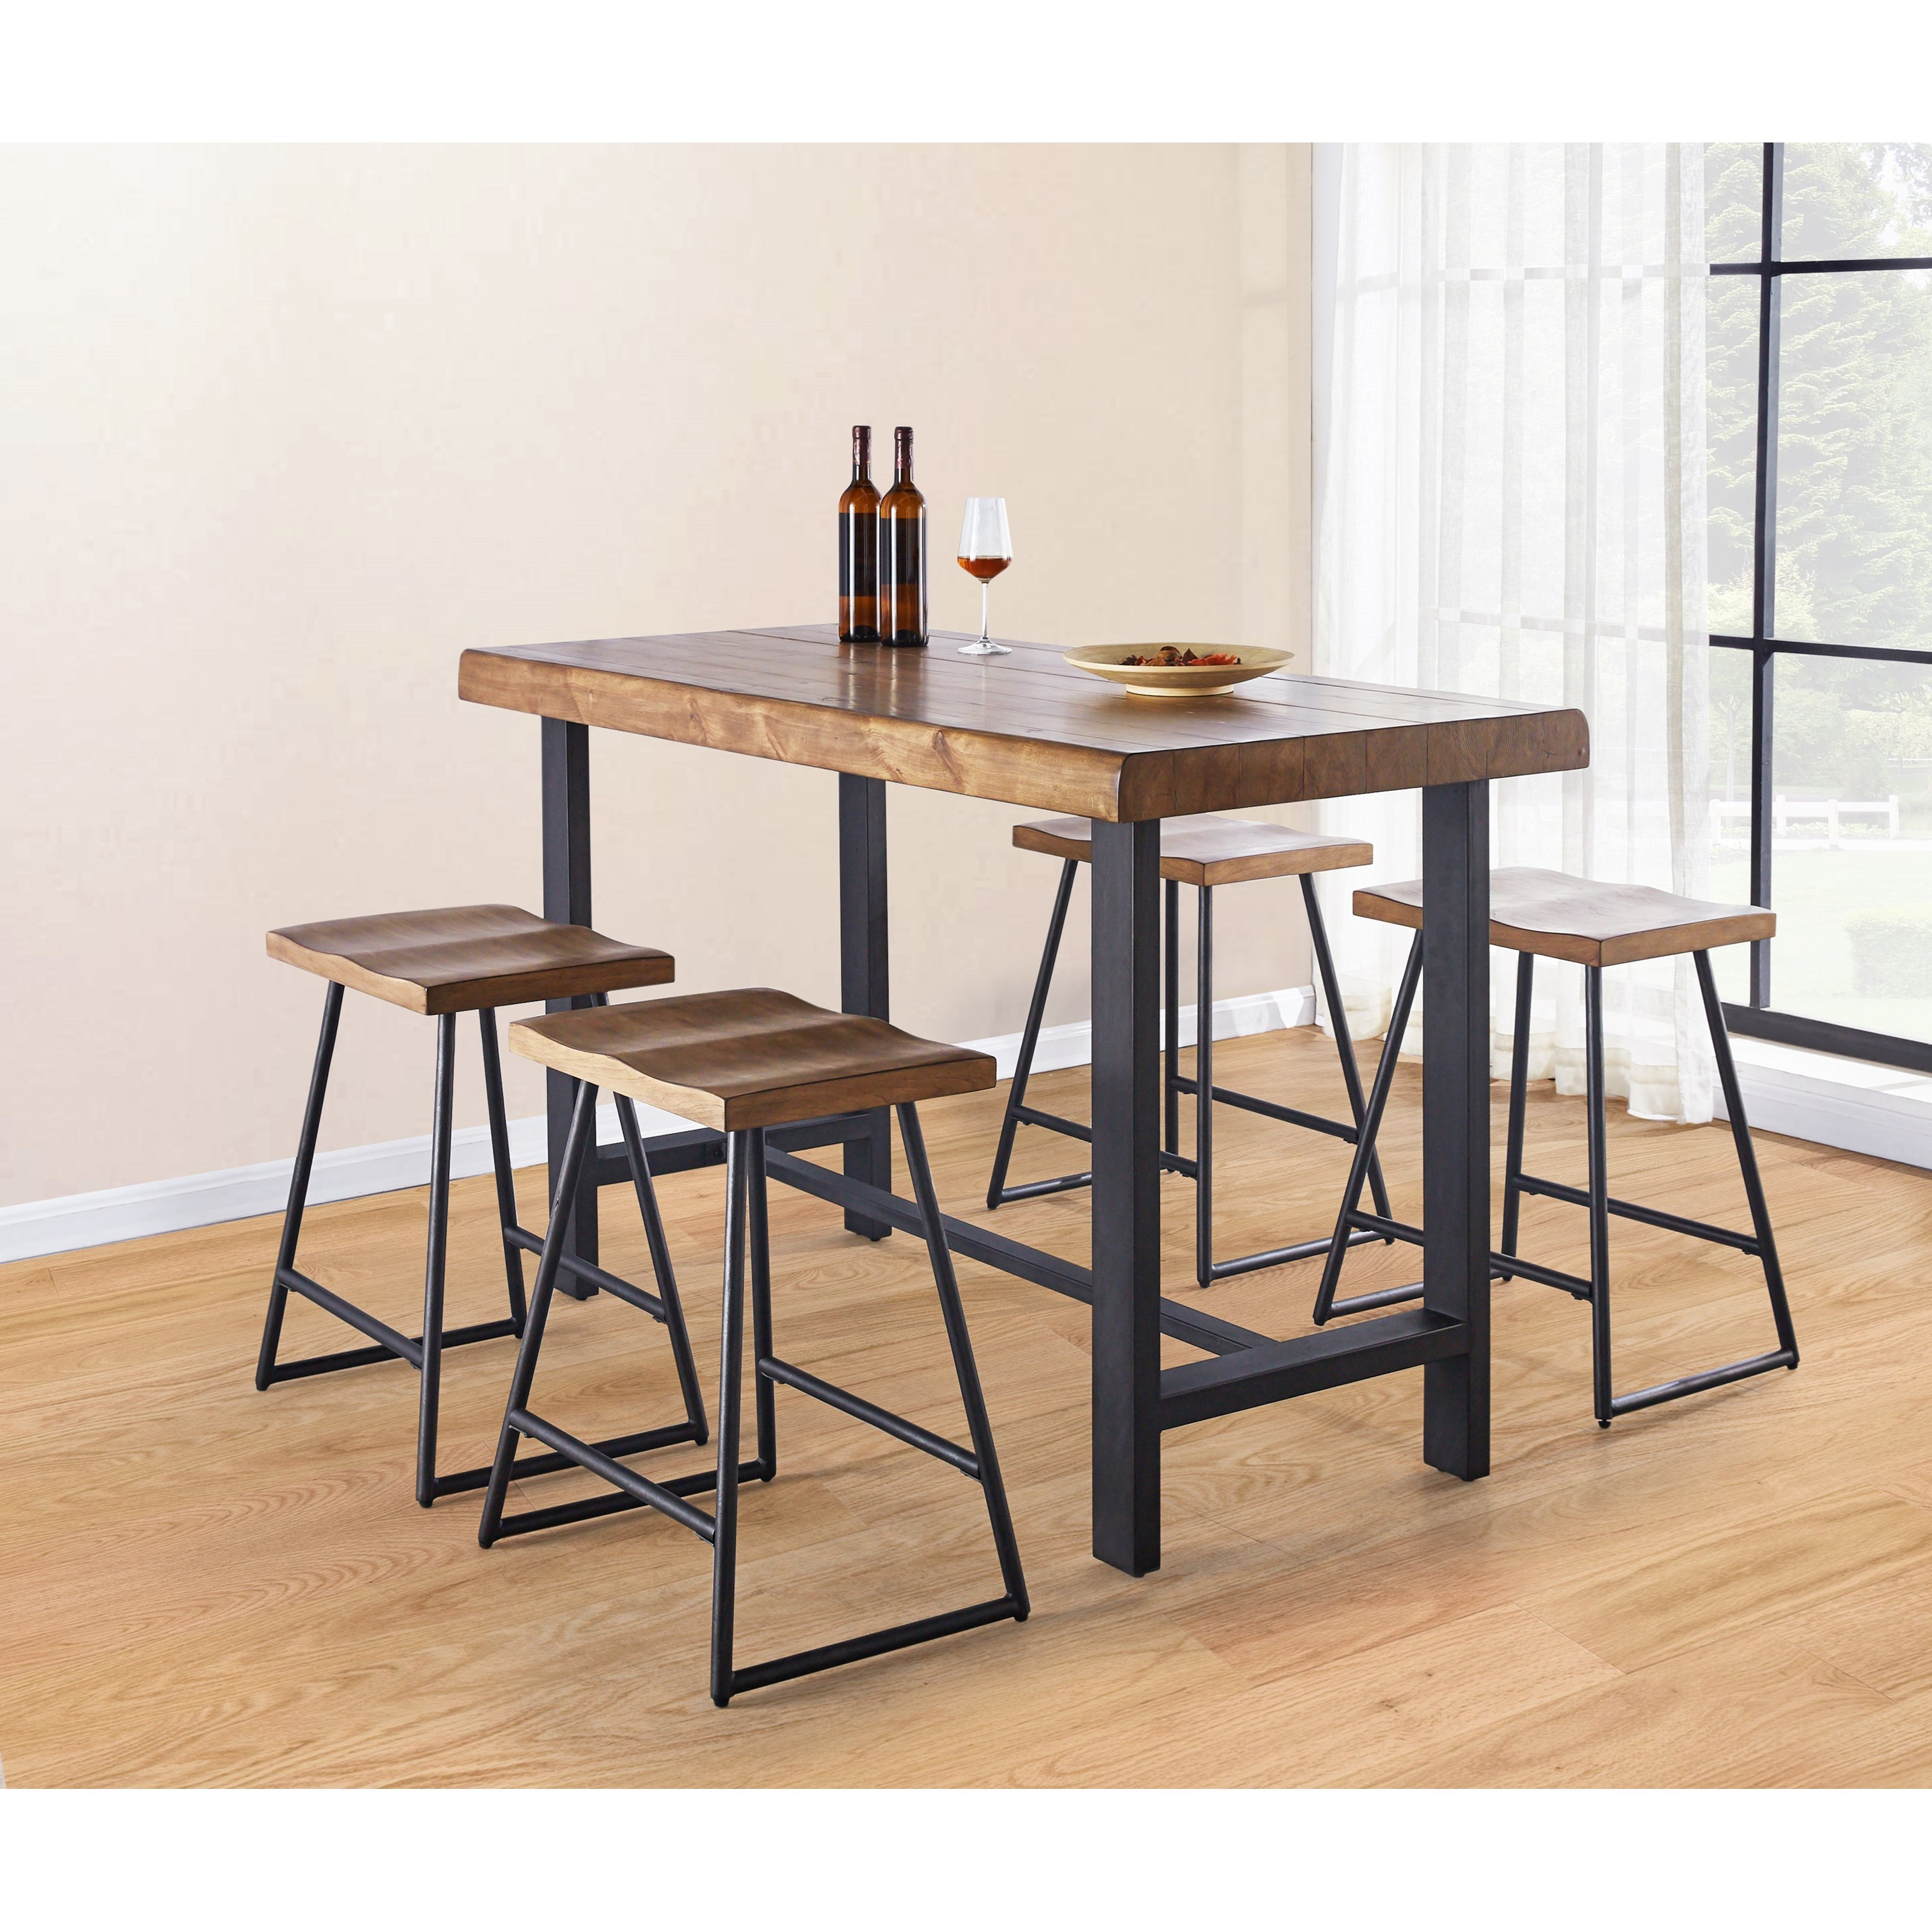 Landon Counter Height Table and Stool Set by Steve Silver at Walker's Furniture